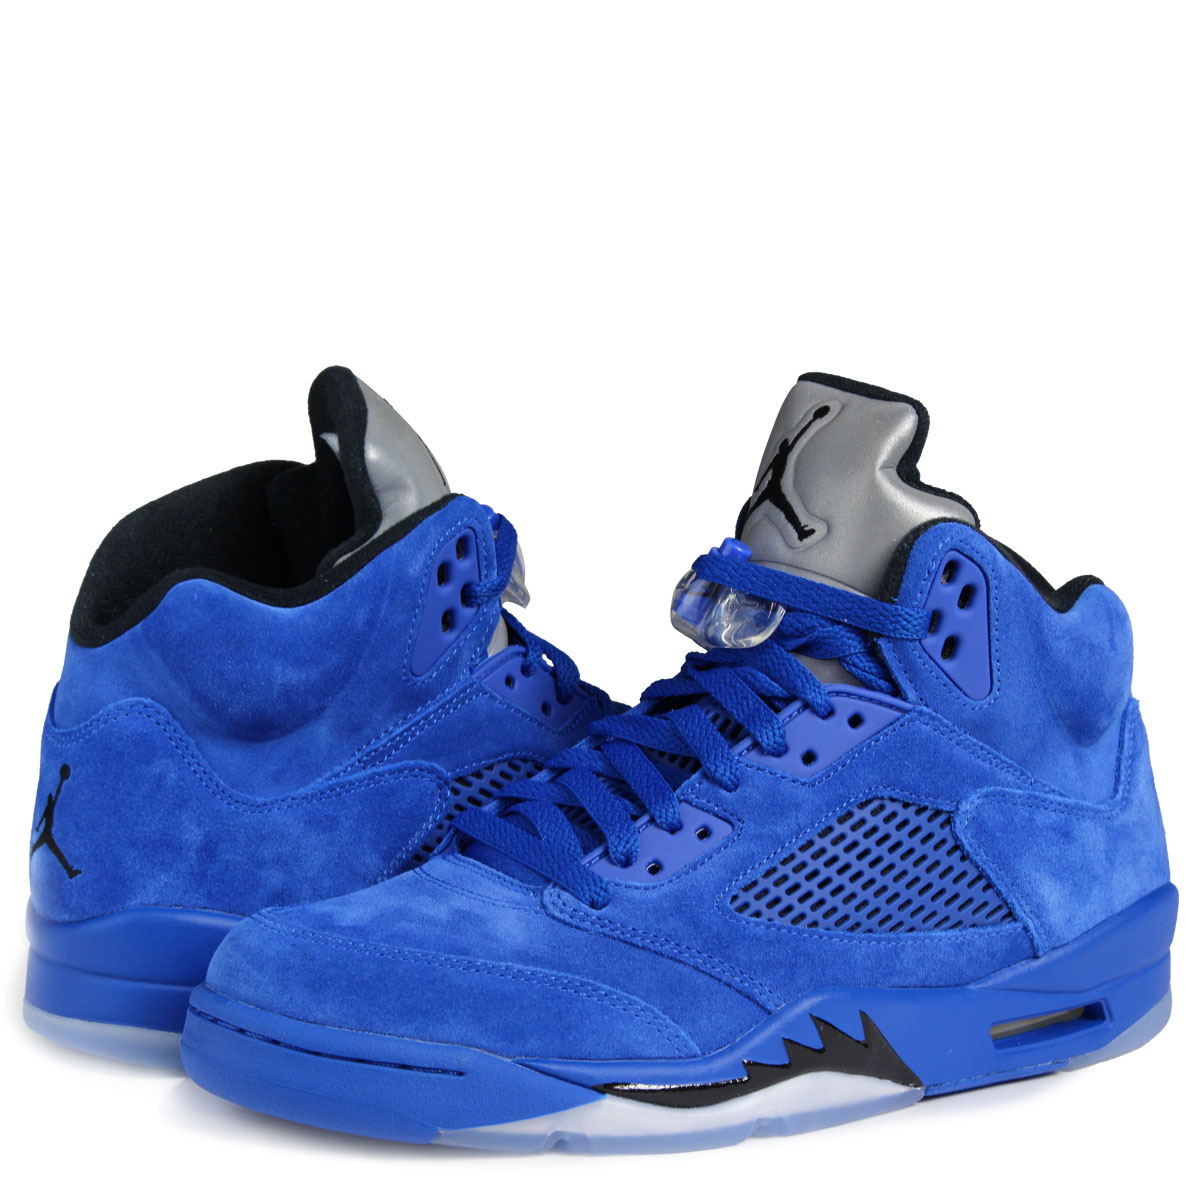 low priced 5c777 356b8 ALLSPORTS  NIKE AIR JORDAN 5 RETRO BLUE SUEDE Nike Air Jordan 5 nostalgic  sneakers 136,027-401 men s shoes blue  10 12 Shinnyu load    Rakuten Global  Market